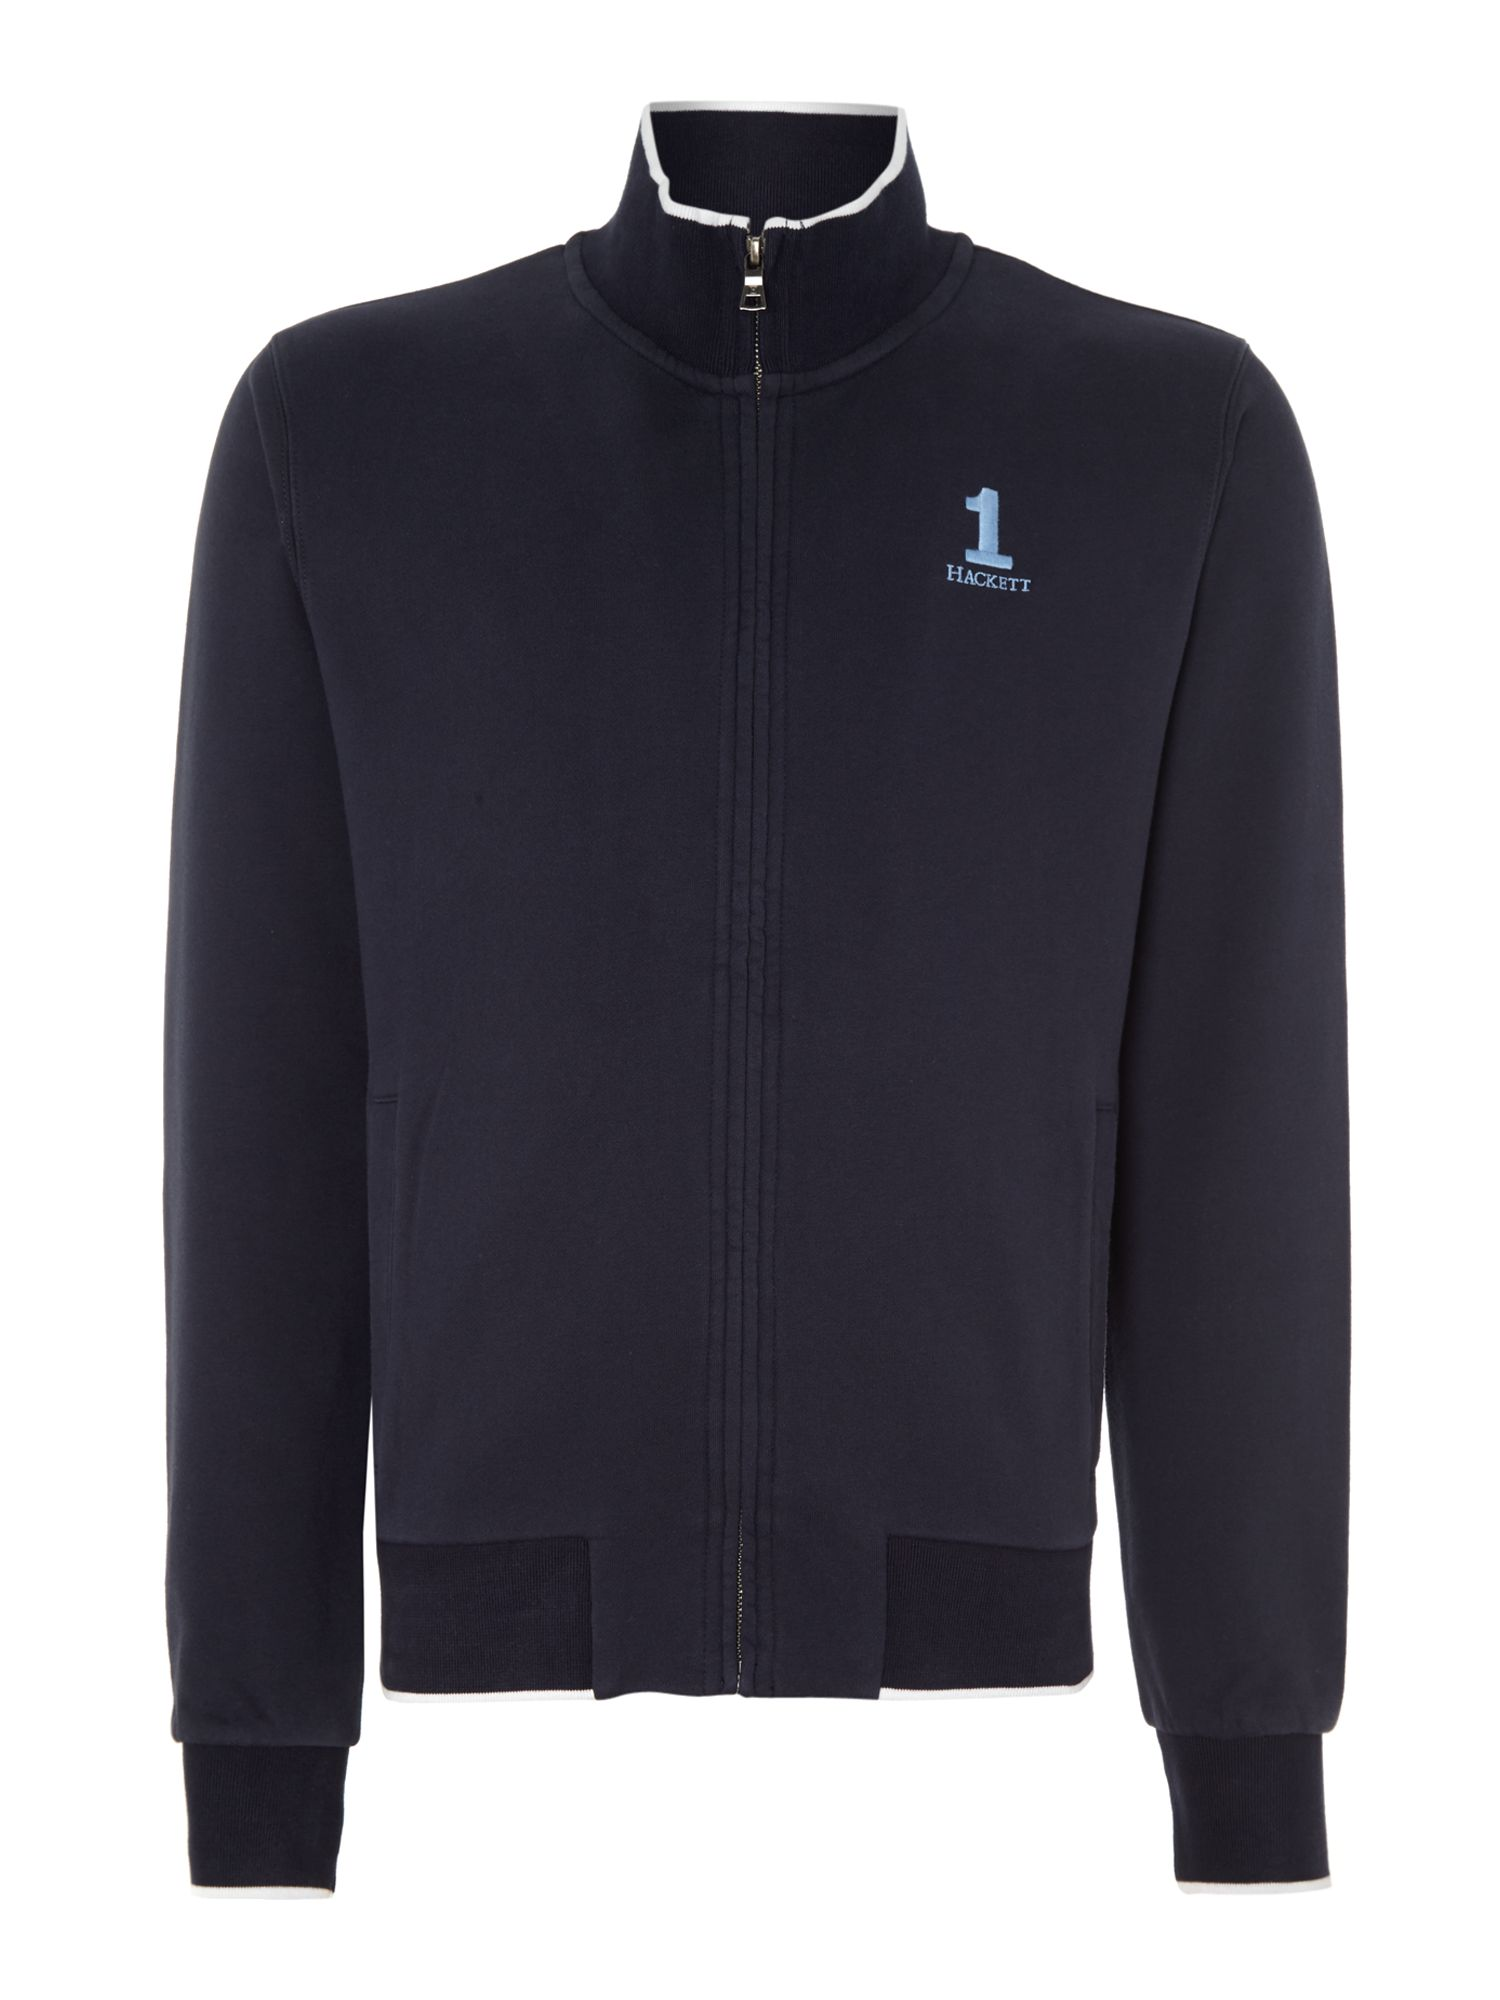 Aston martin zip sweatshirt